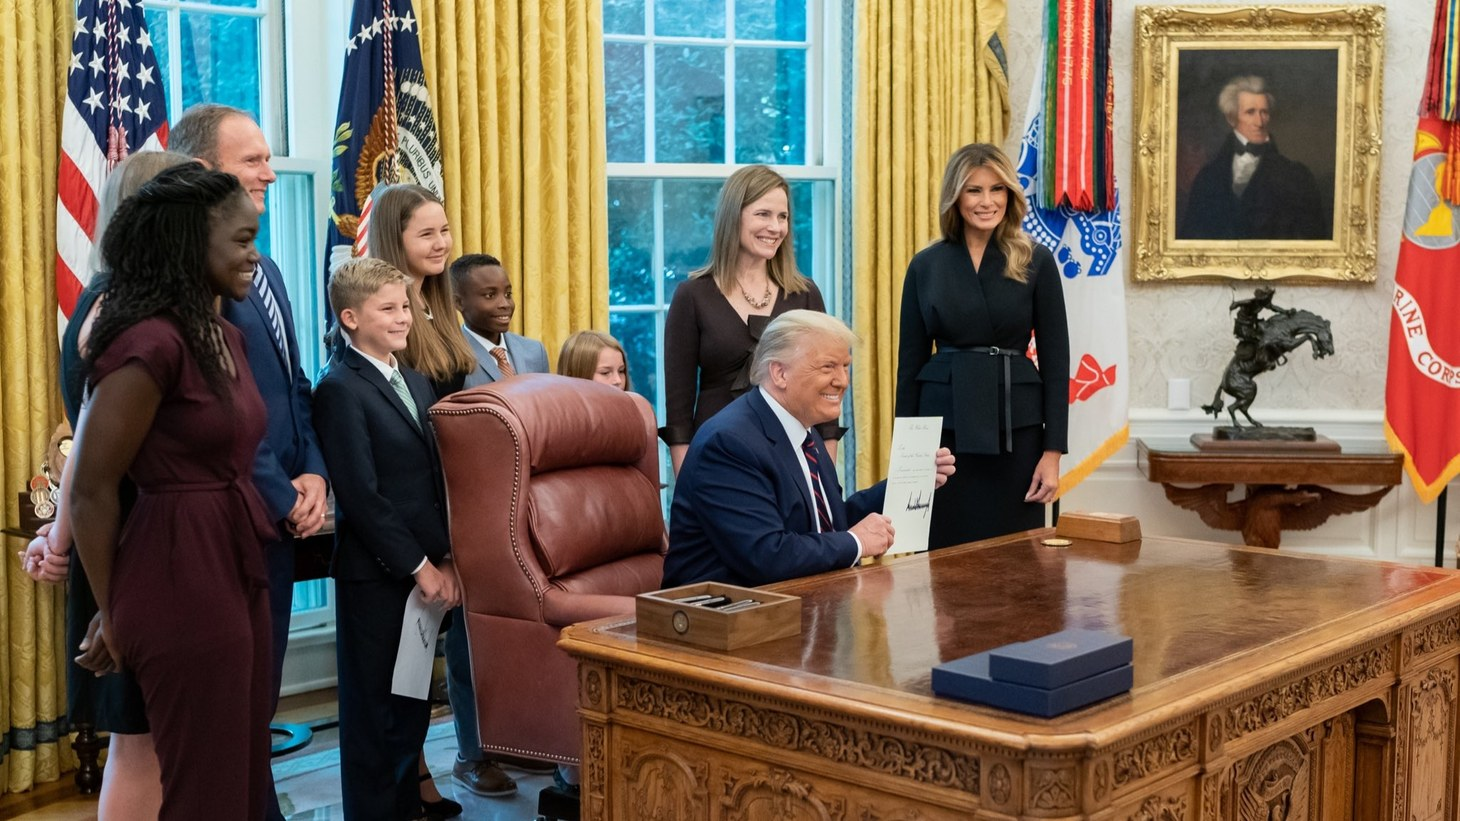 Amy Coney Barrett and her family with President Donald Trump and First Lady Melania Trump, September 26, 2020.